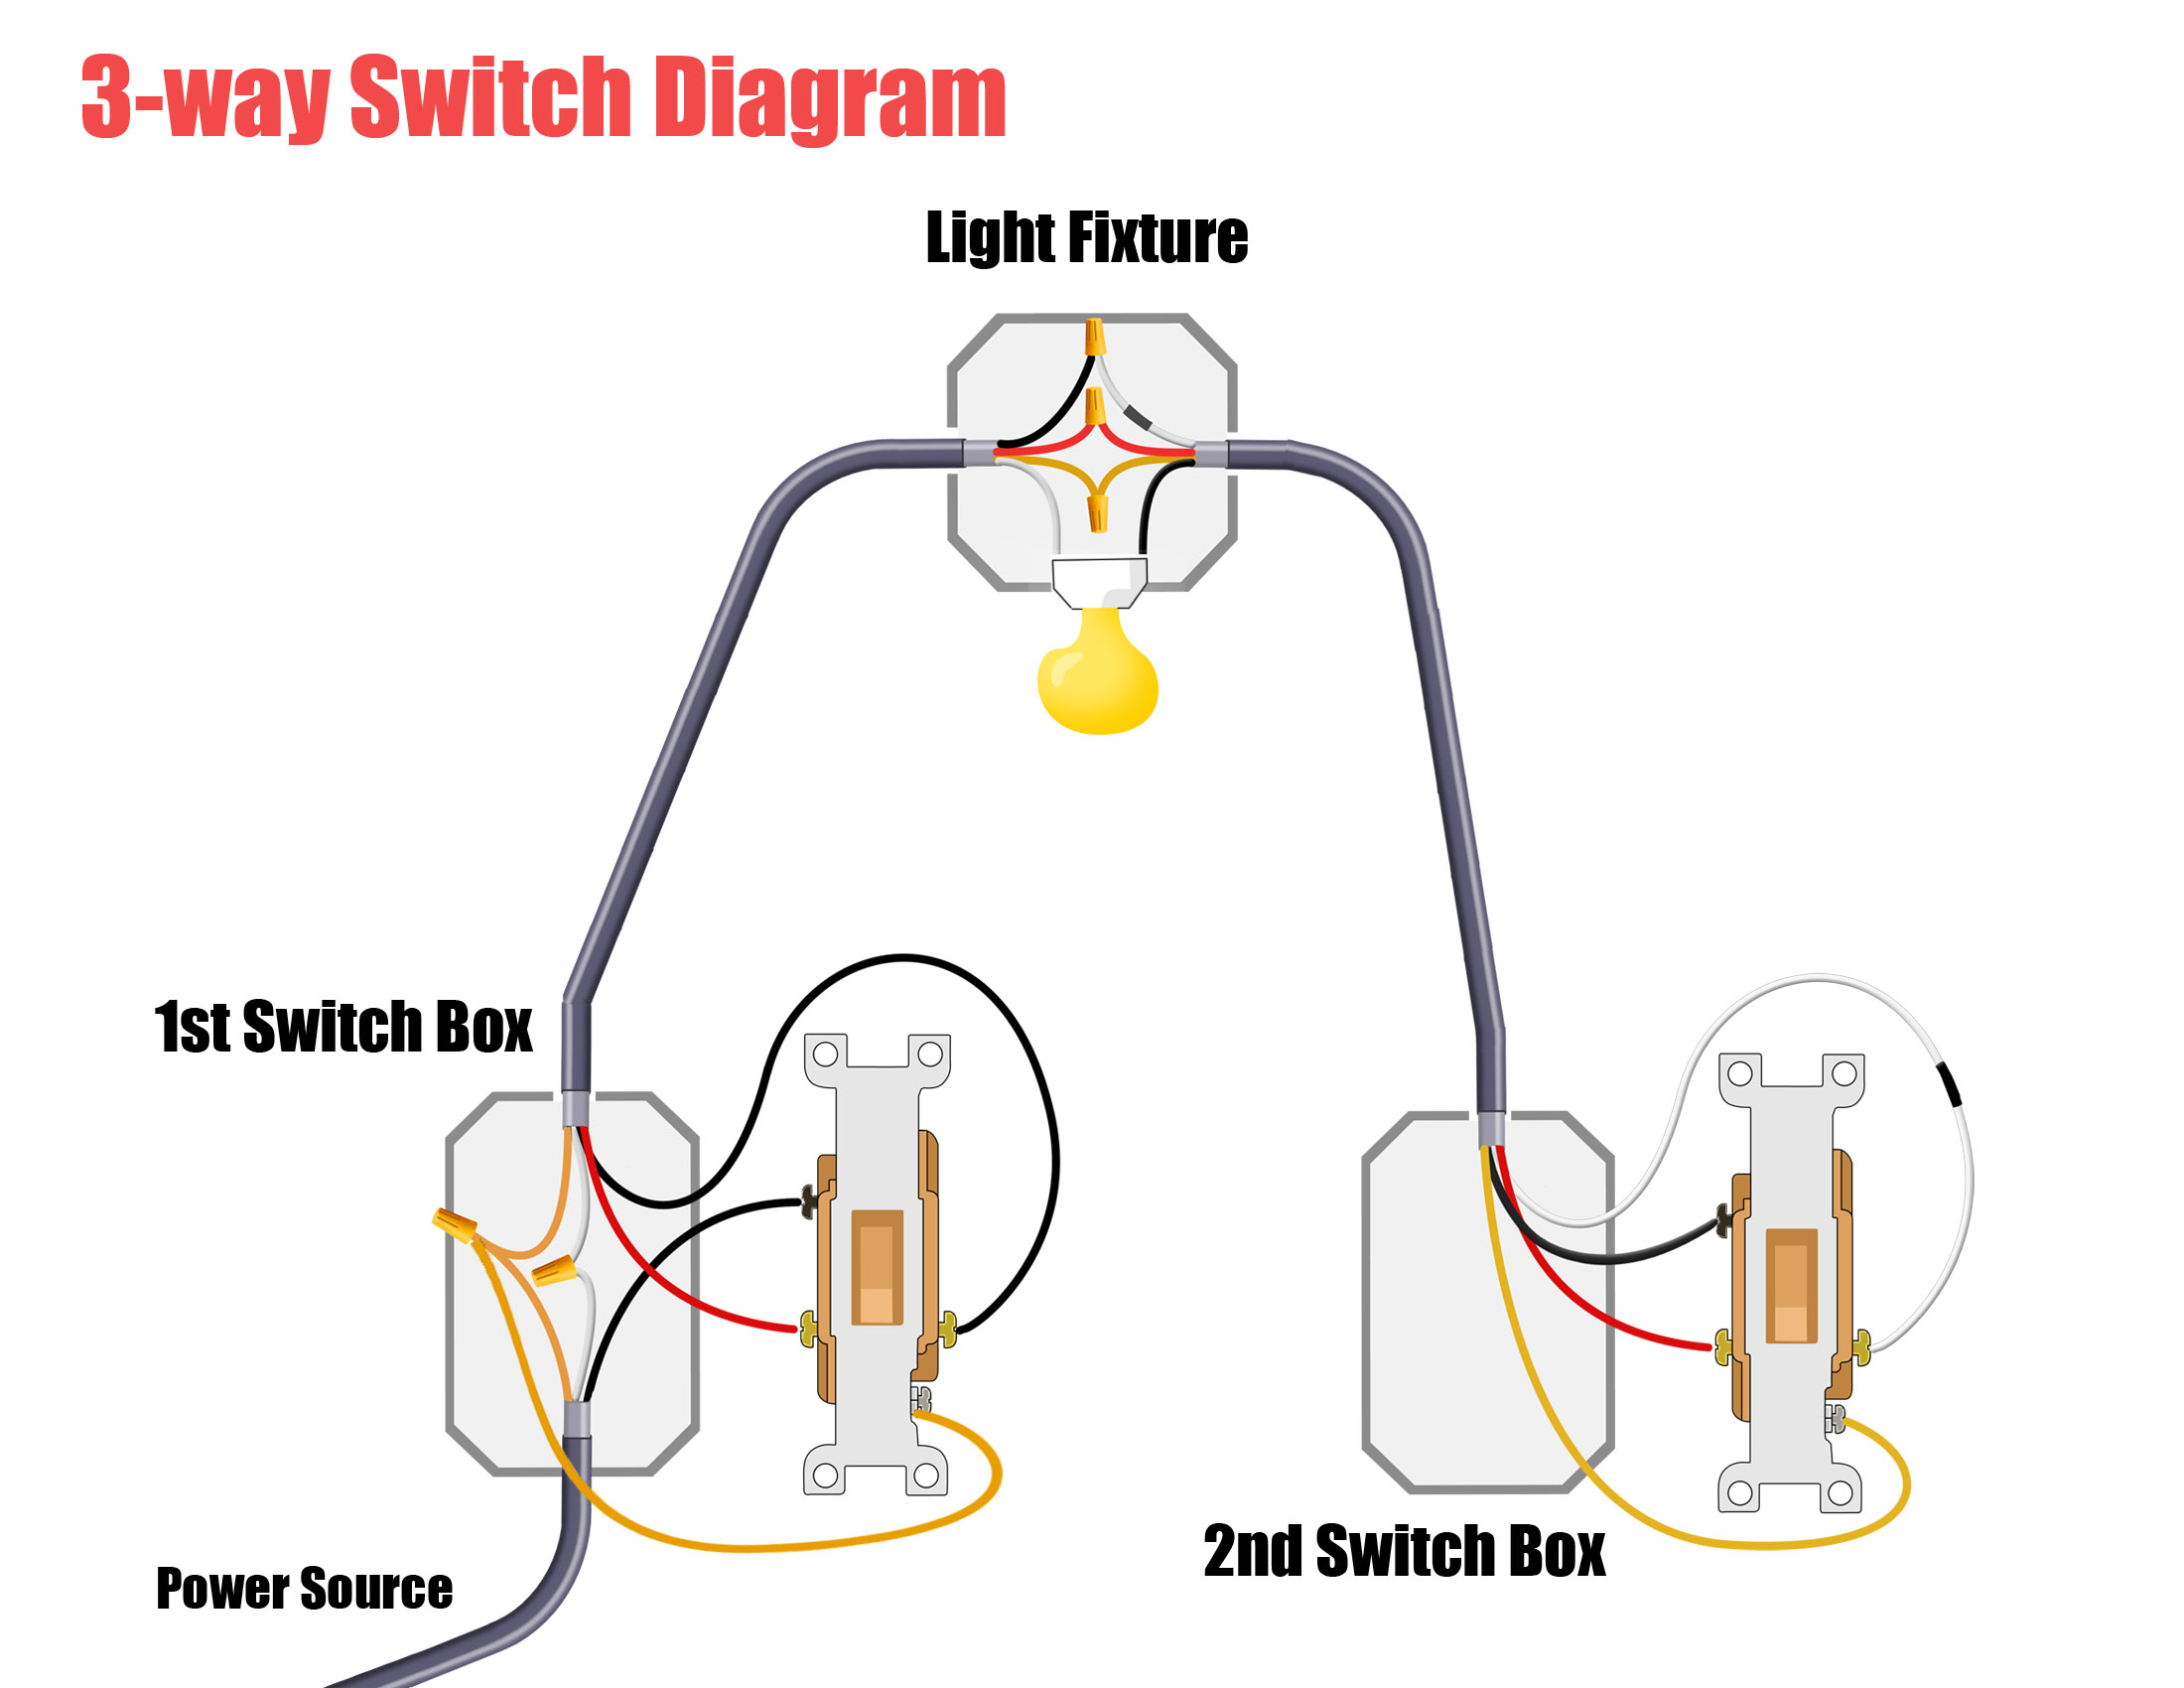 3way switch wiring diagram guitar pickups gfci outlet free engine image for